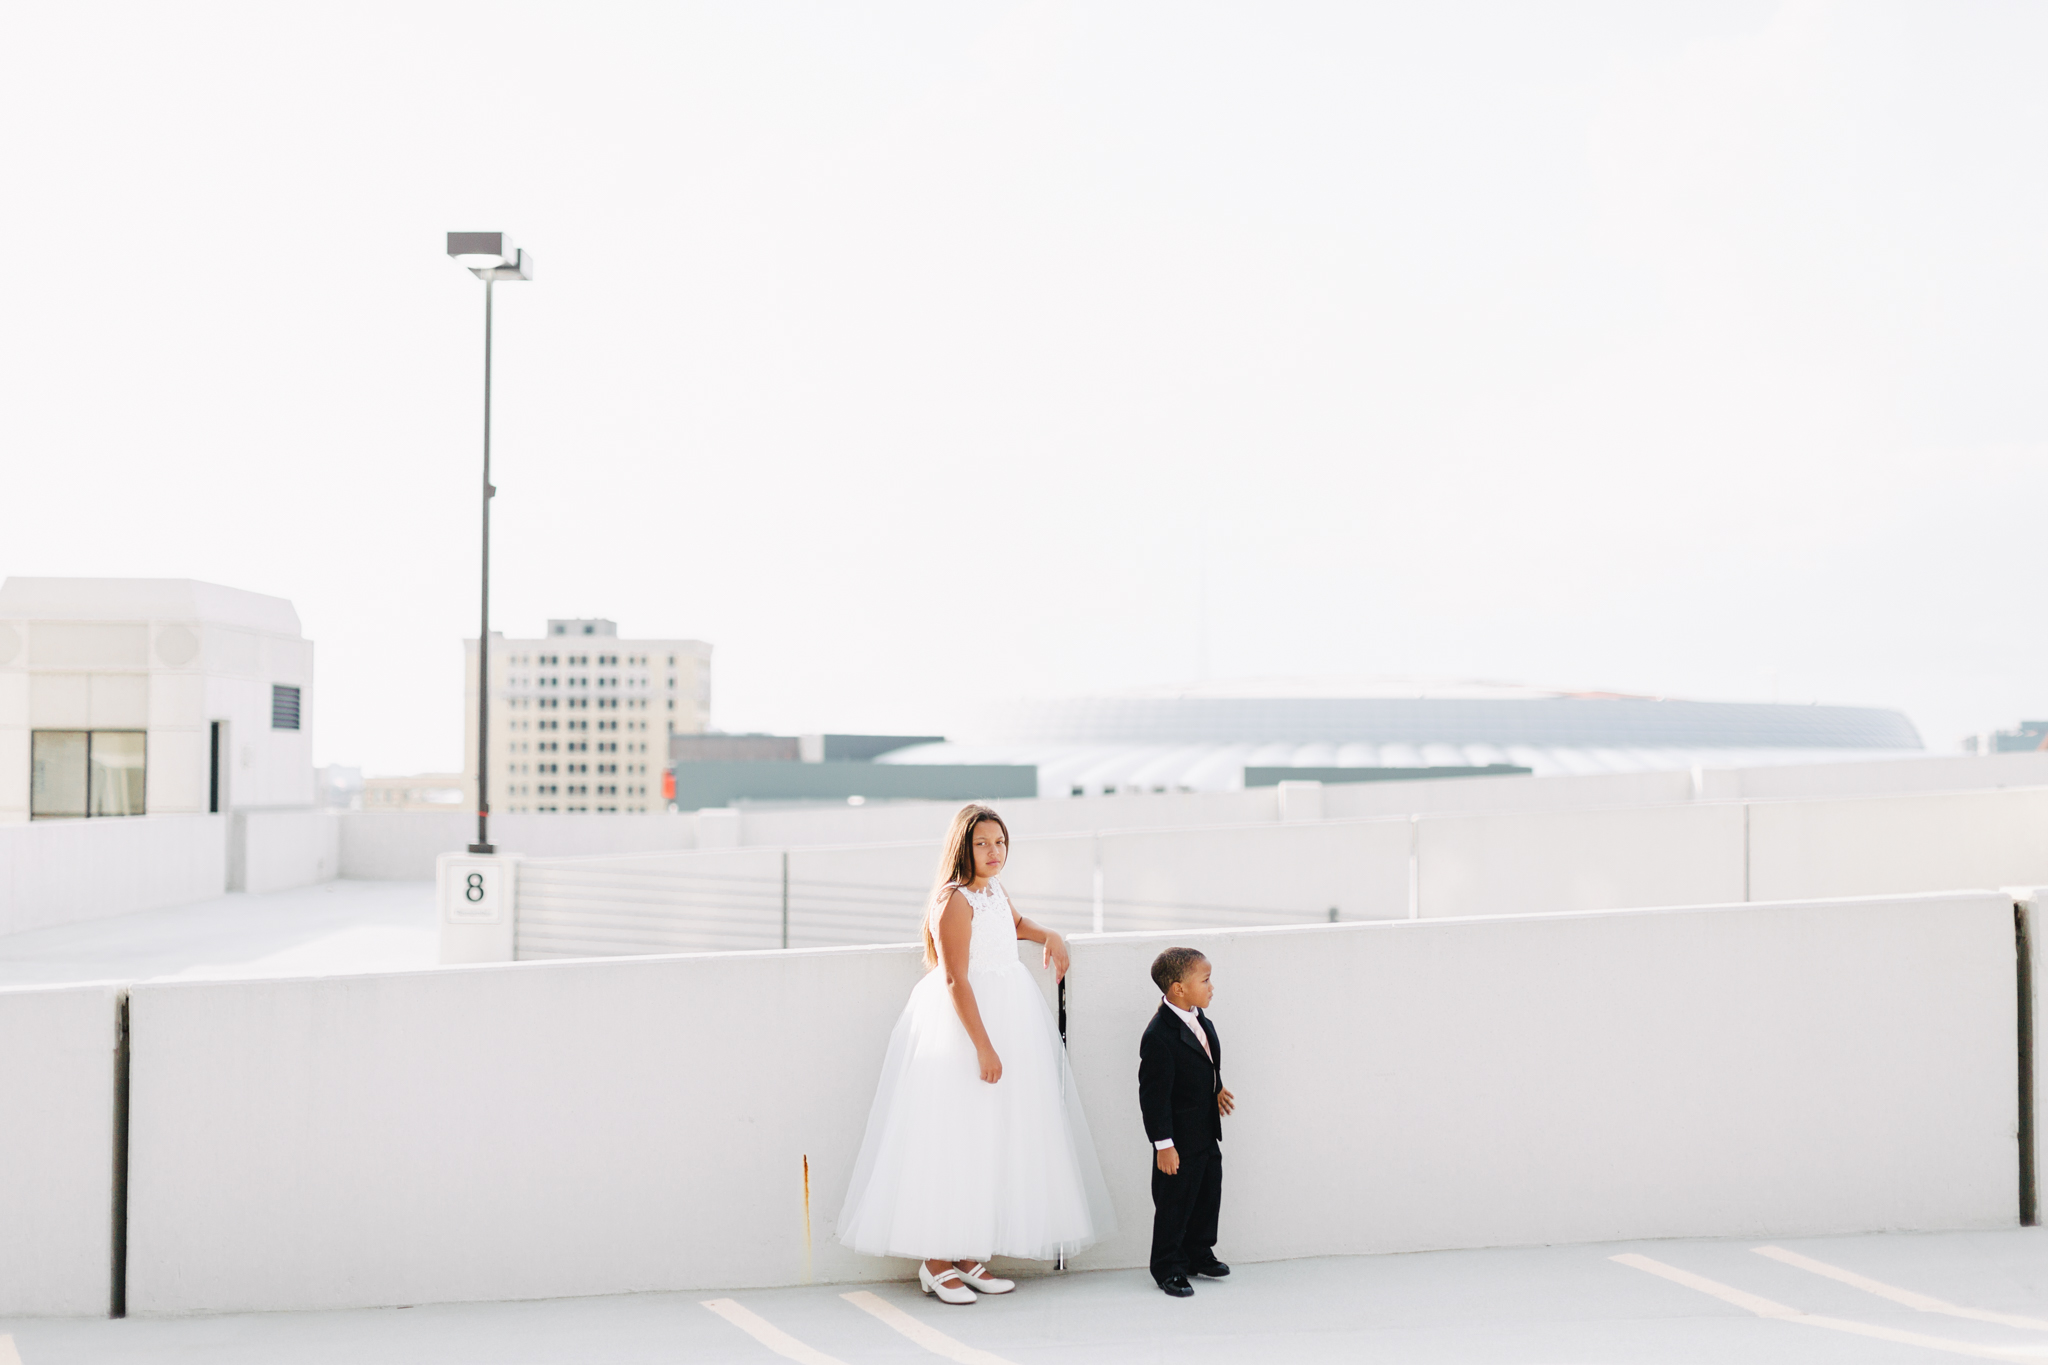 taylormarieparker_michiganweddingphotographer_colonyclubdetroit_-194.jpg